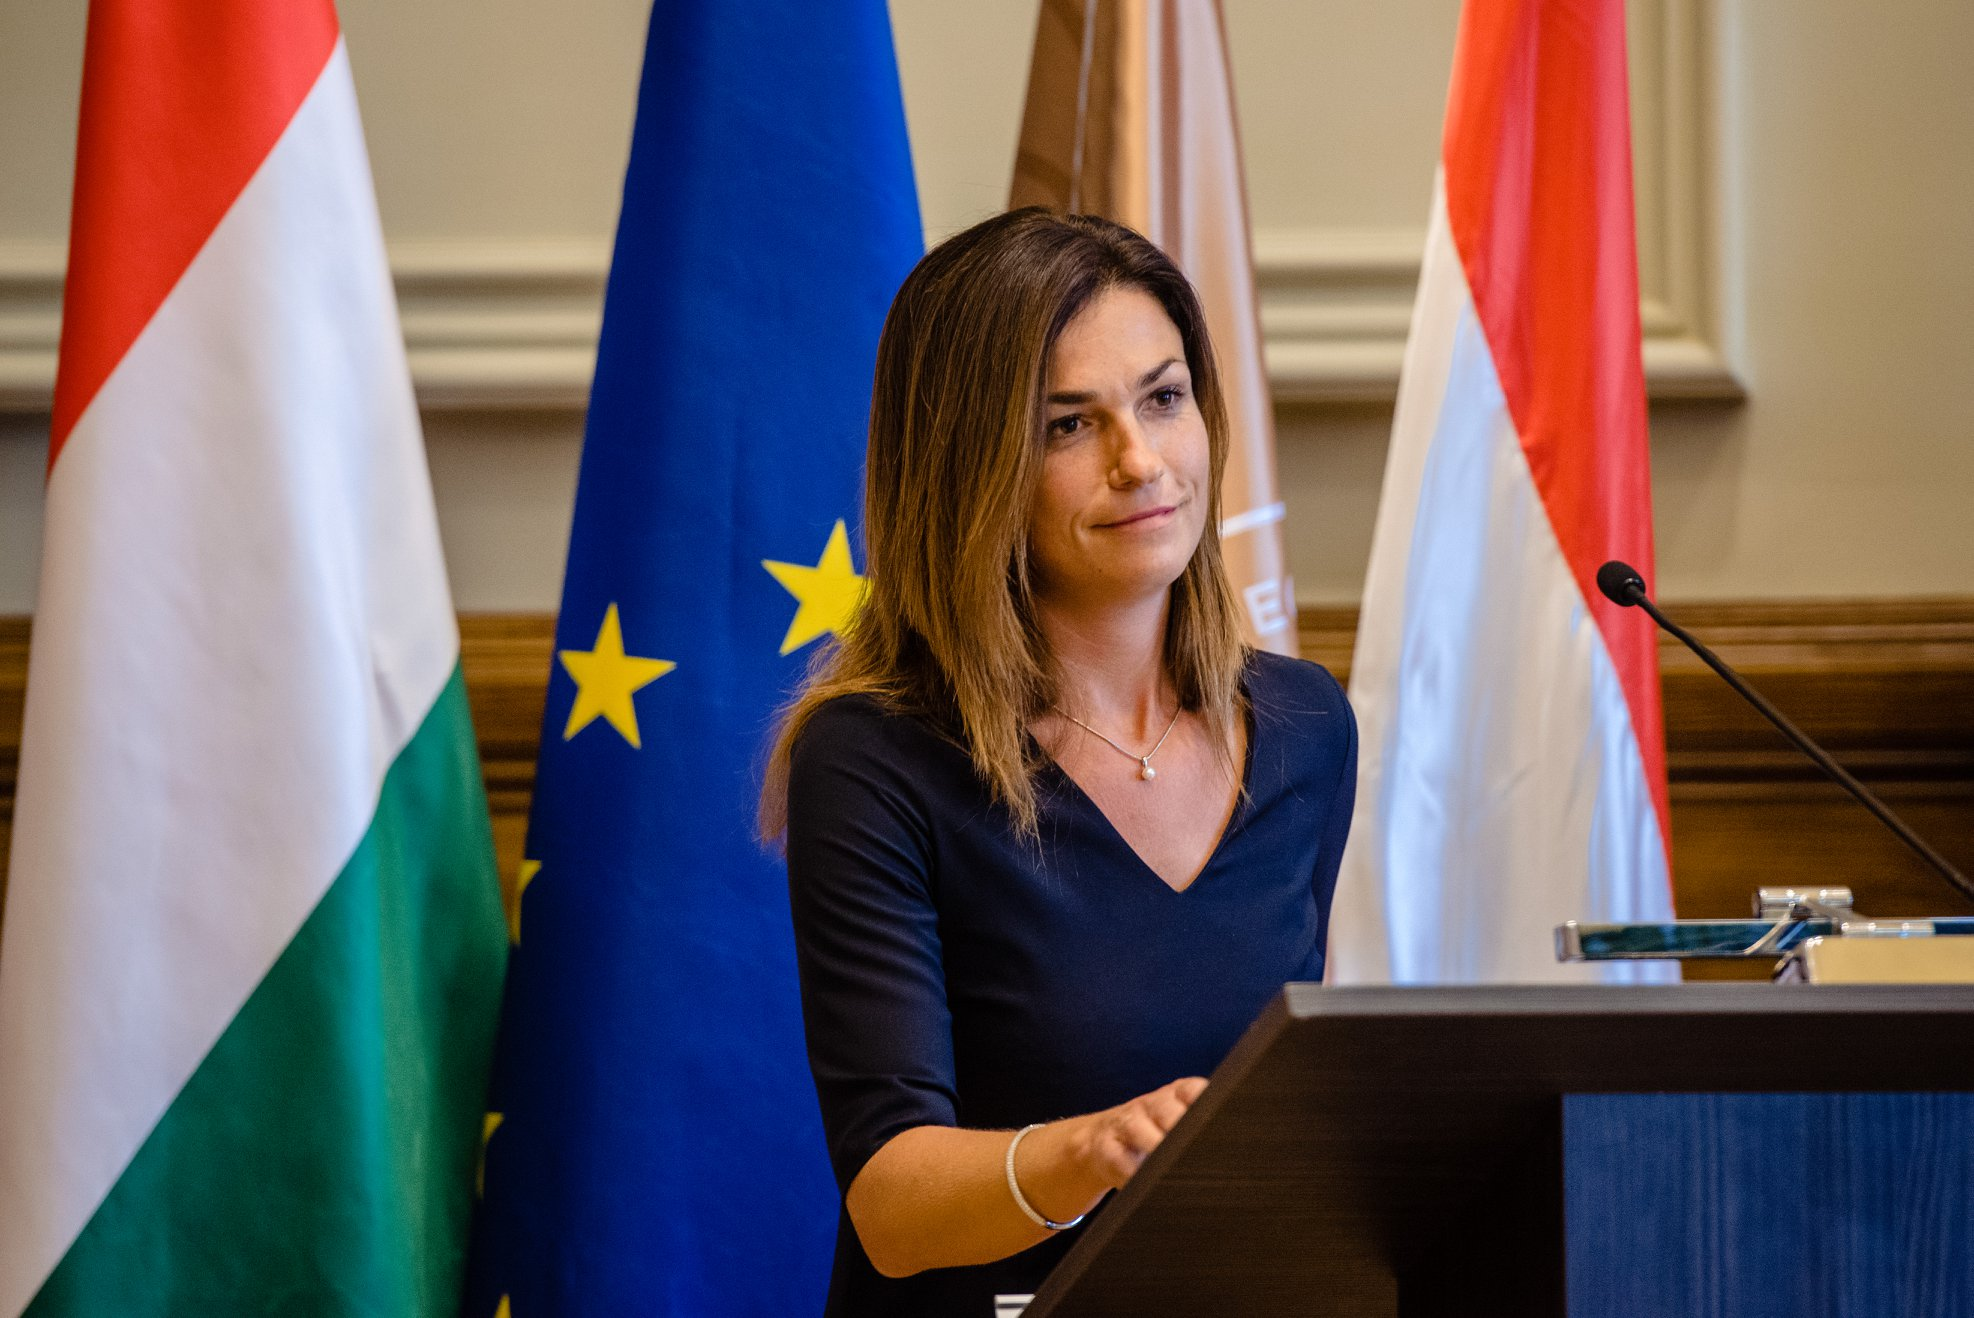 Justice Minister Varga: EU Funds Are Not Handouts